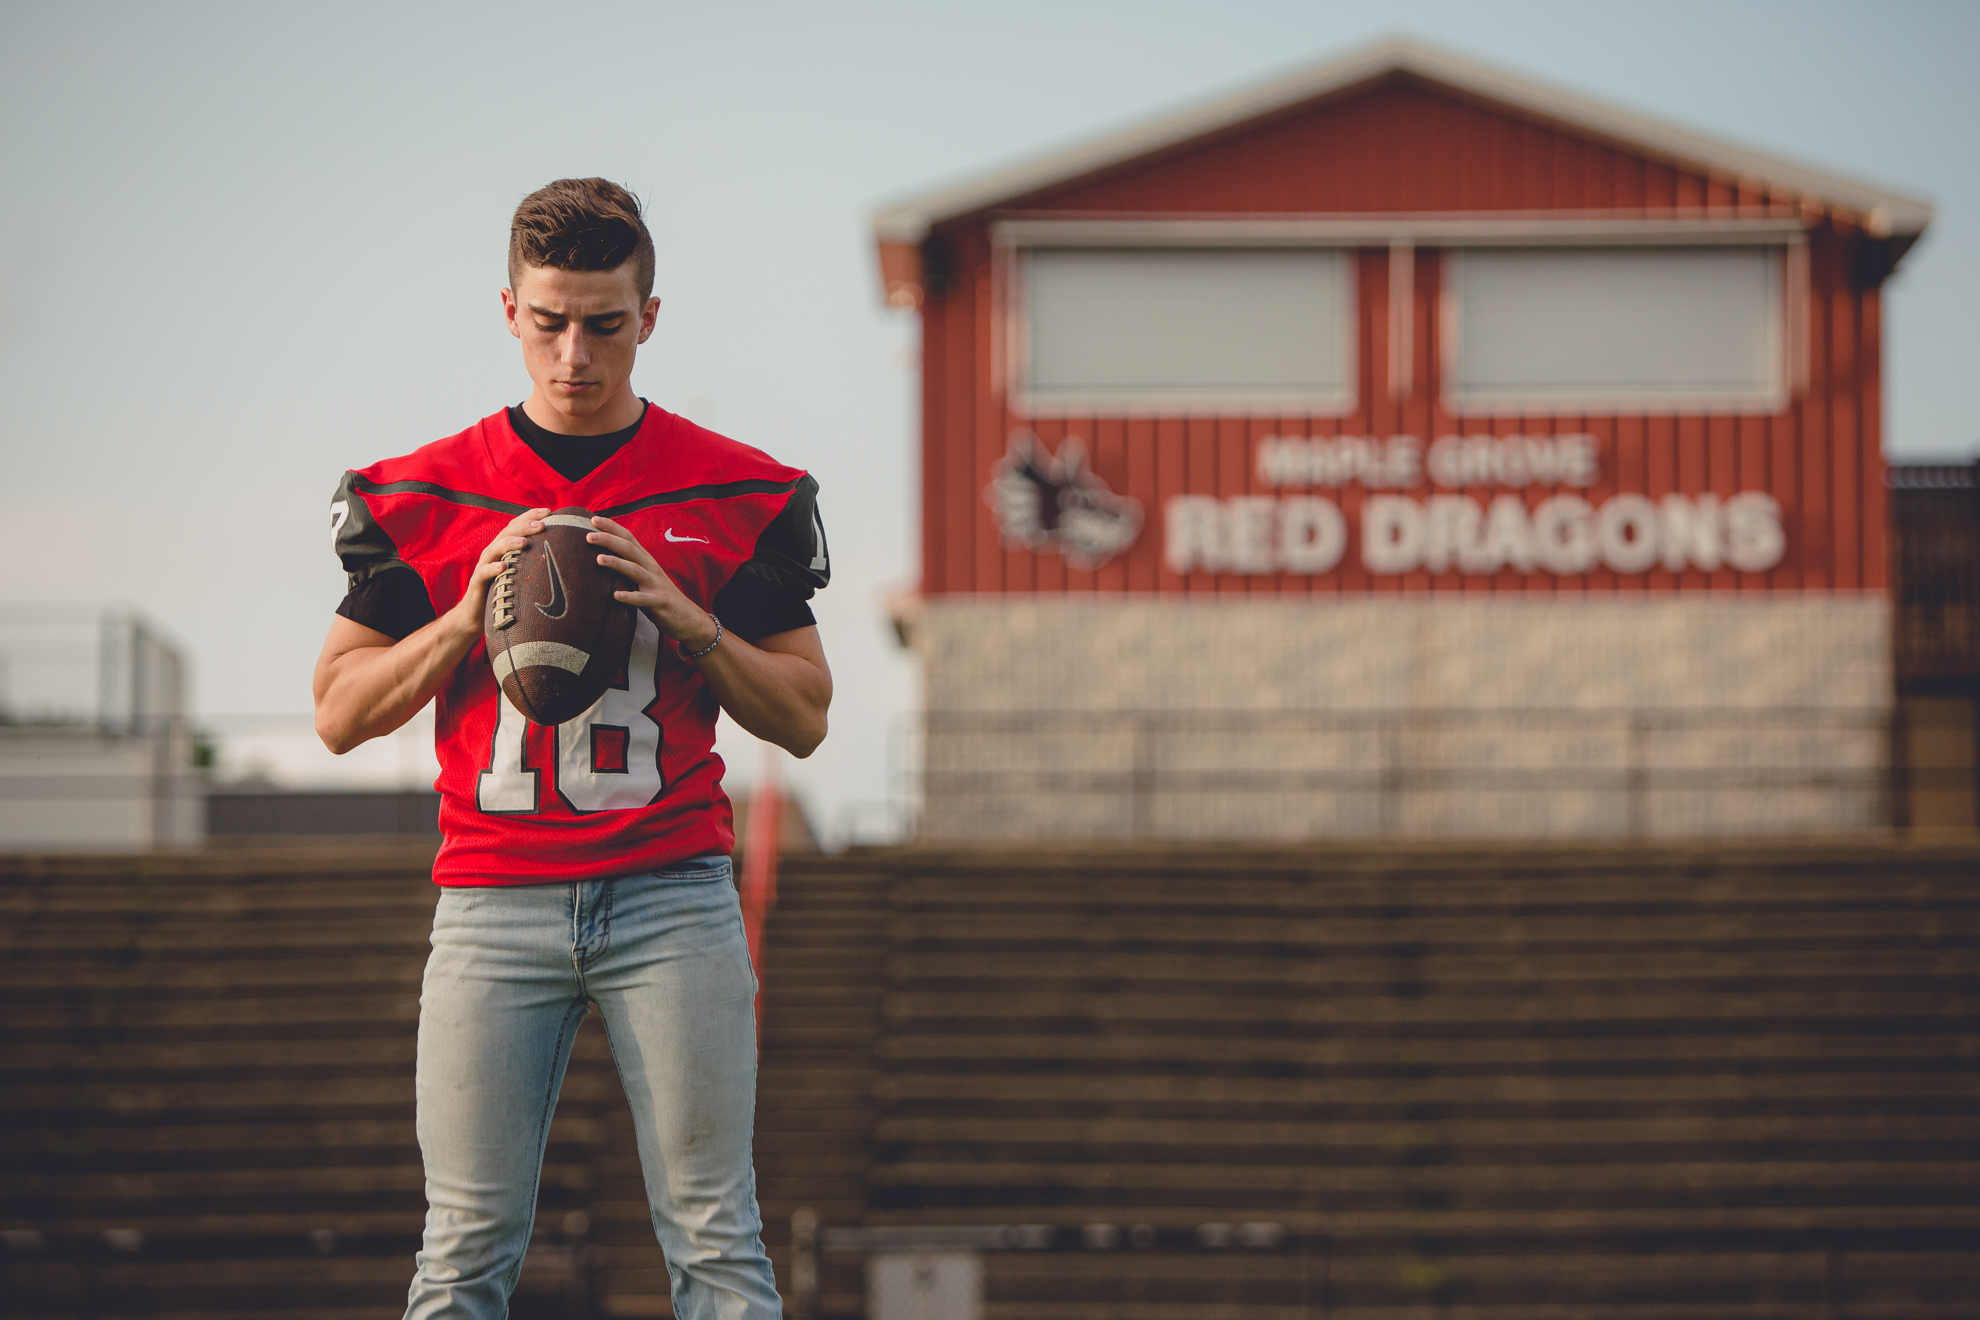 senior picture of football player on field holding ball at Maple Grove high school during portrait session near Buffalo, NY